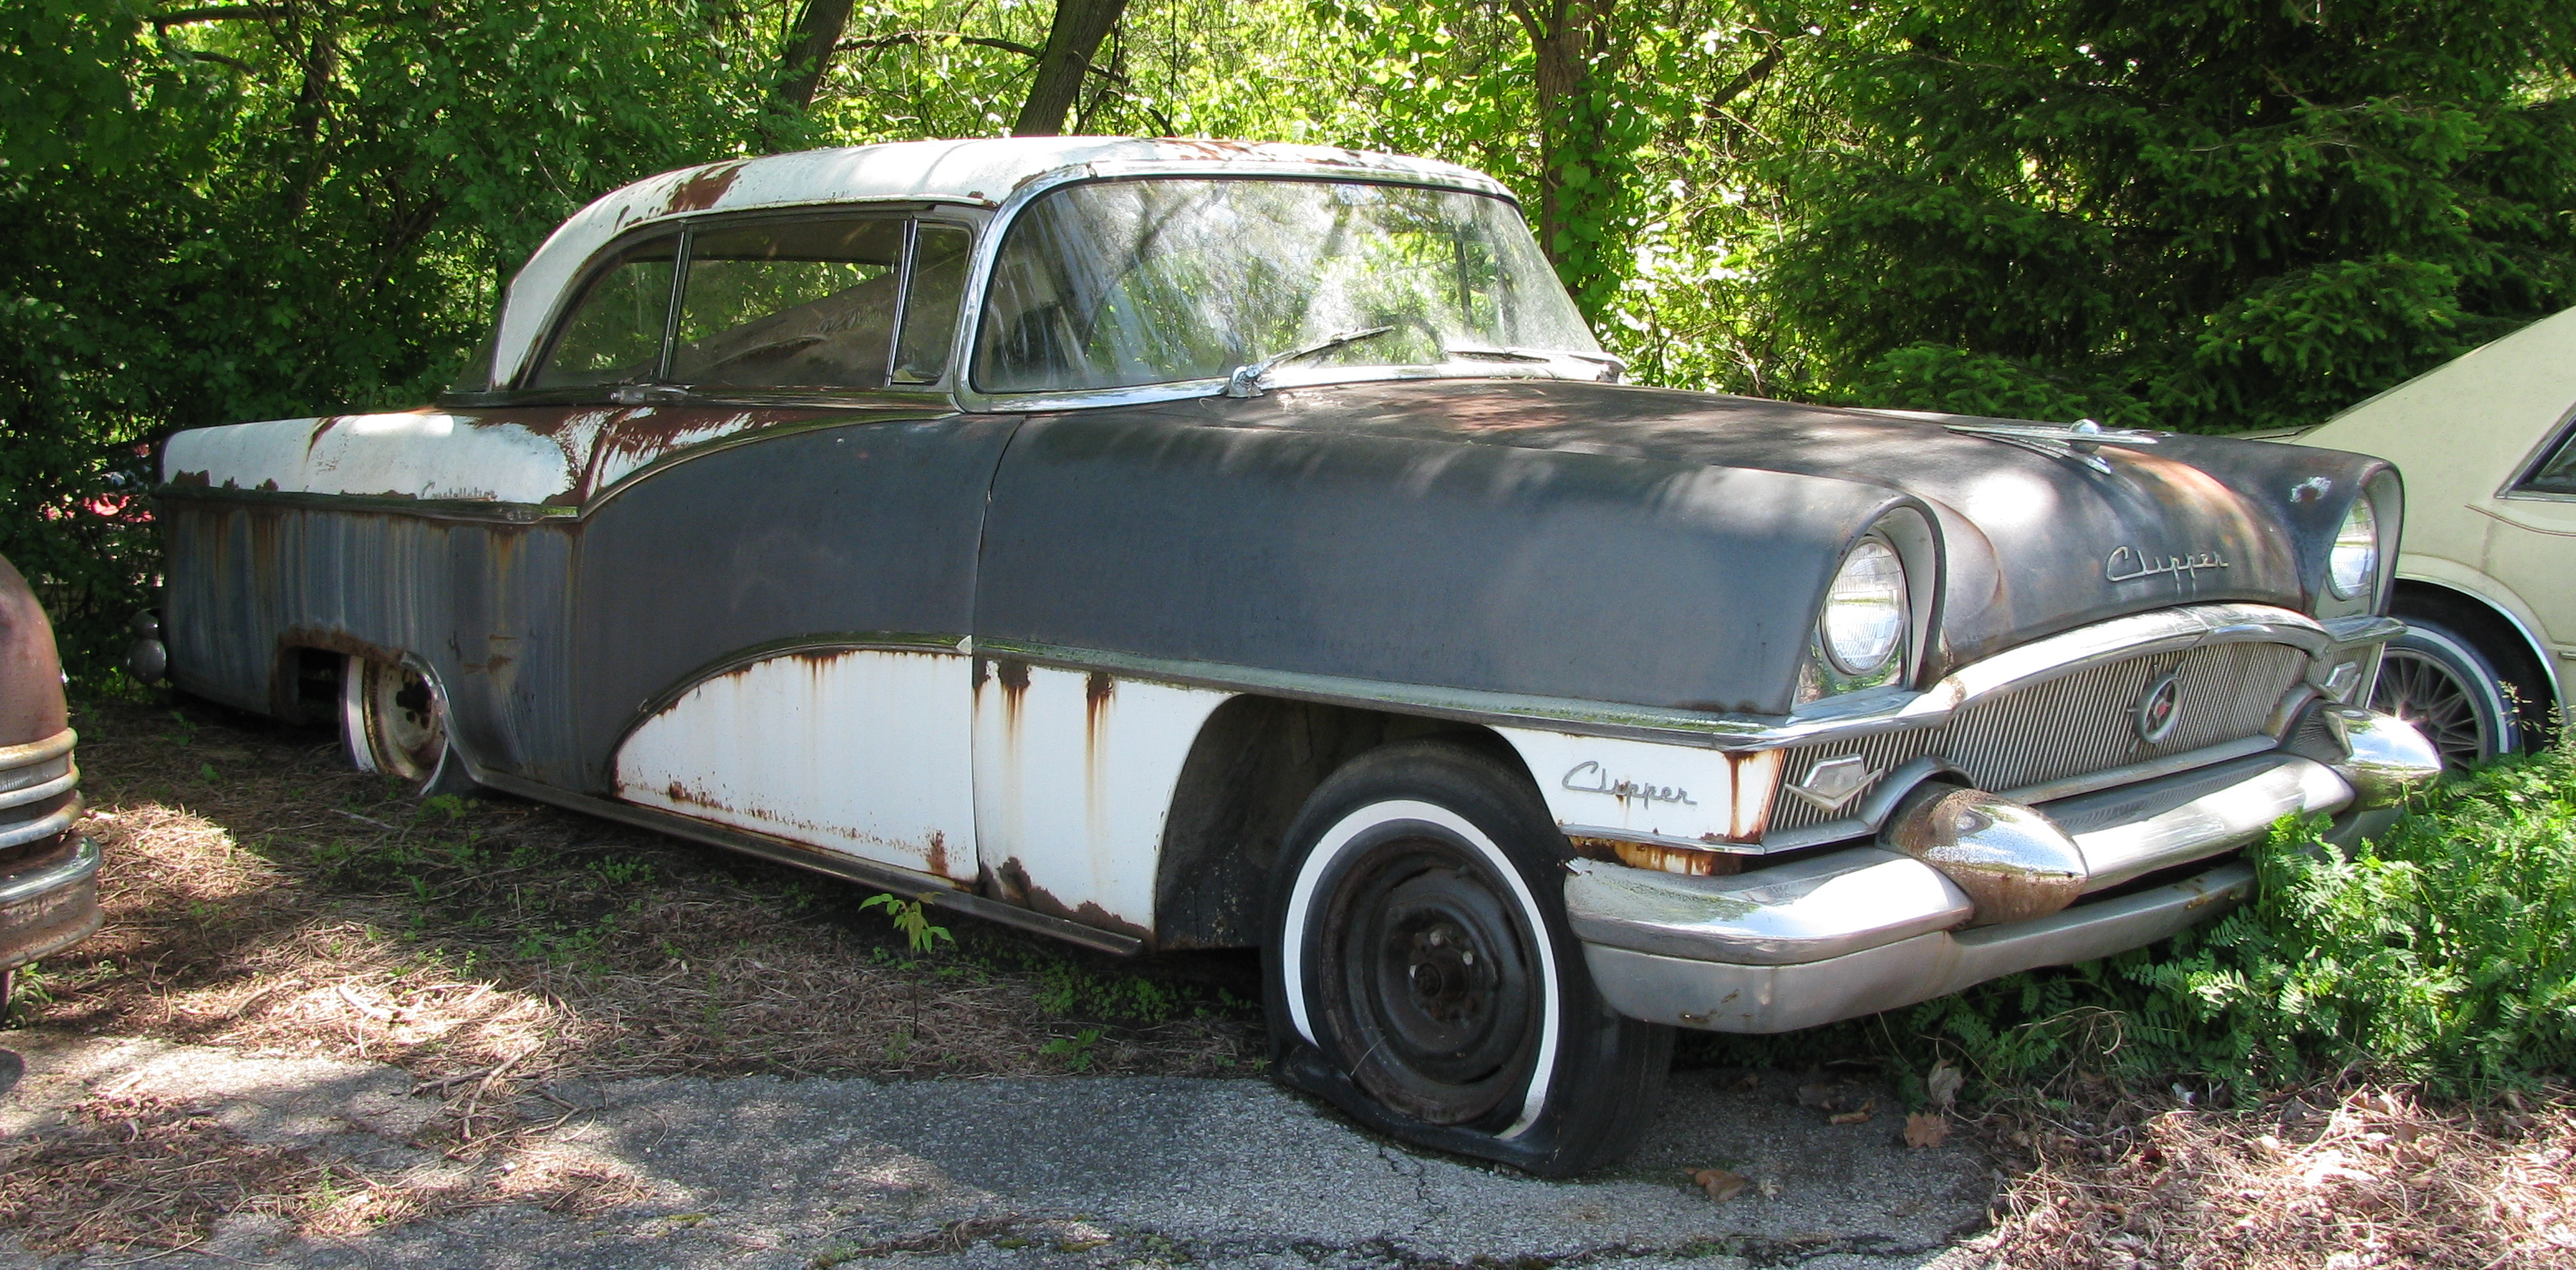 1955 Packard Clipper in top of